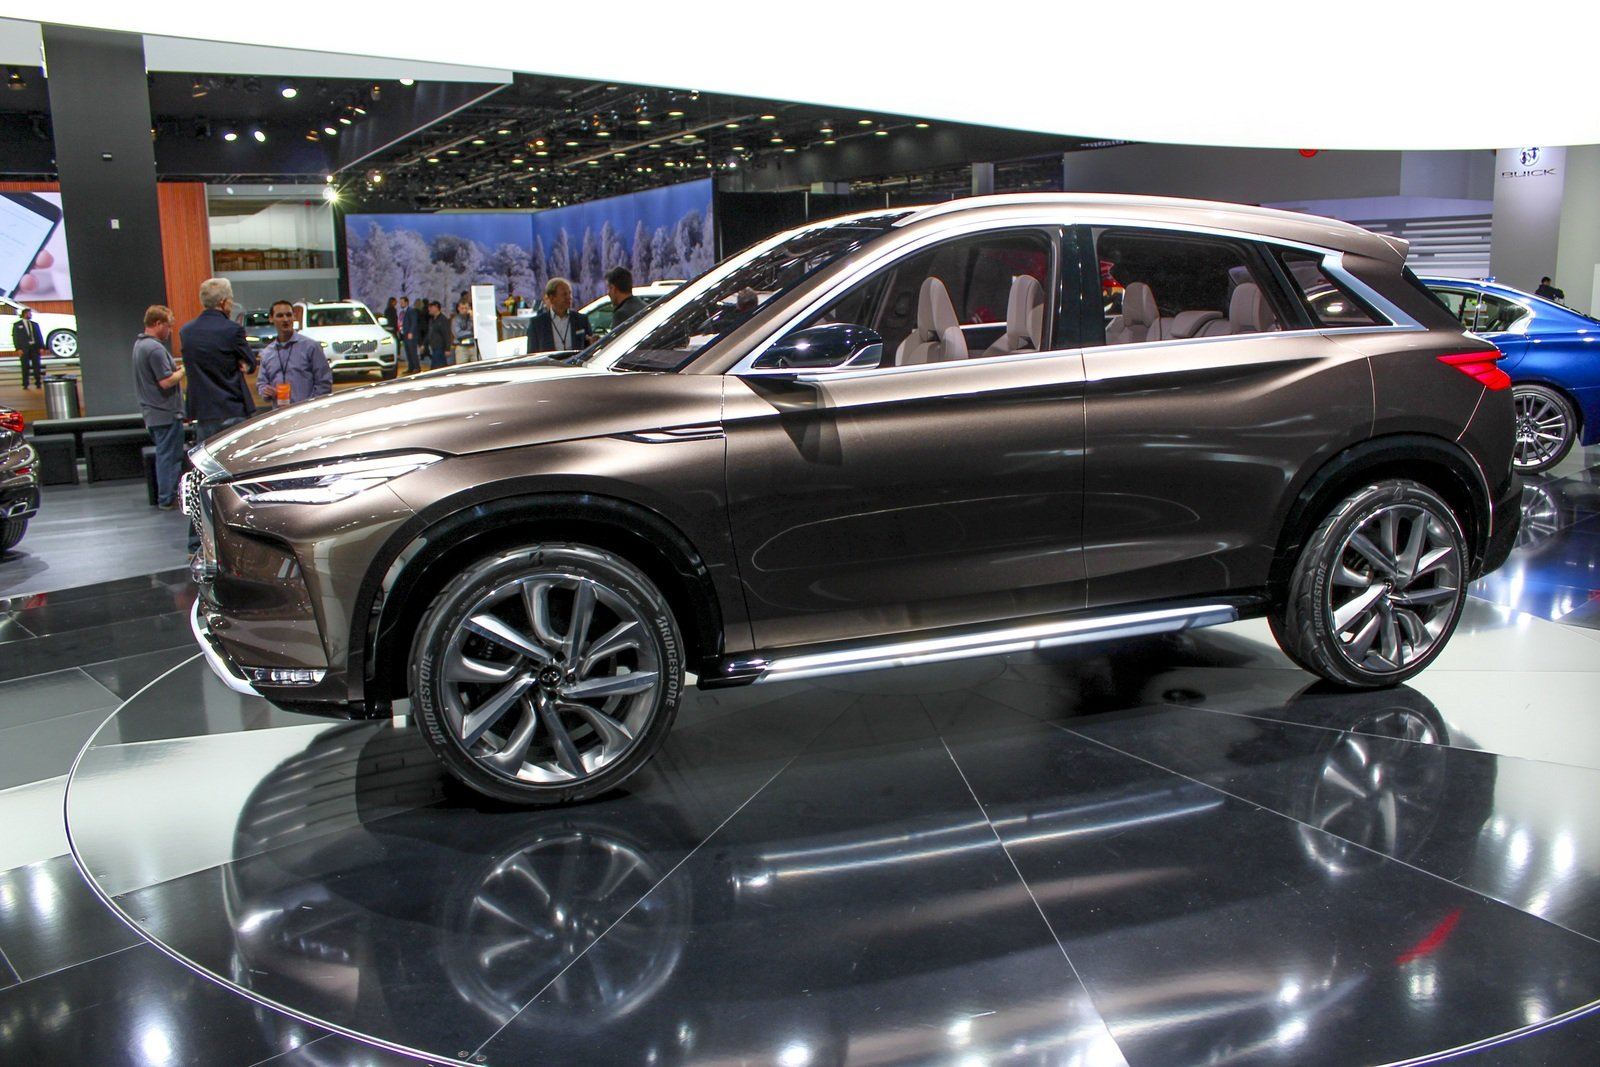 2017 infiniti qx50 concept picture 702013 car review top speed. Black Bedroom Furniture Sets. Home Design Ideas